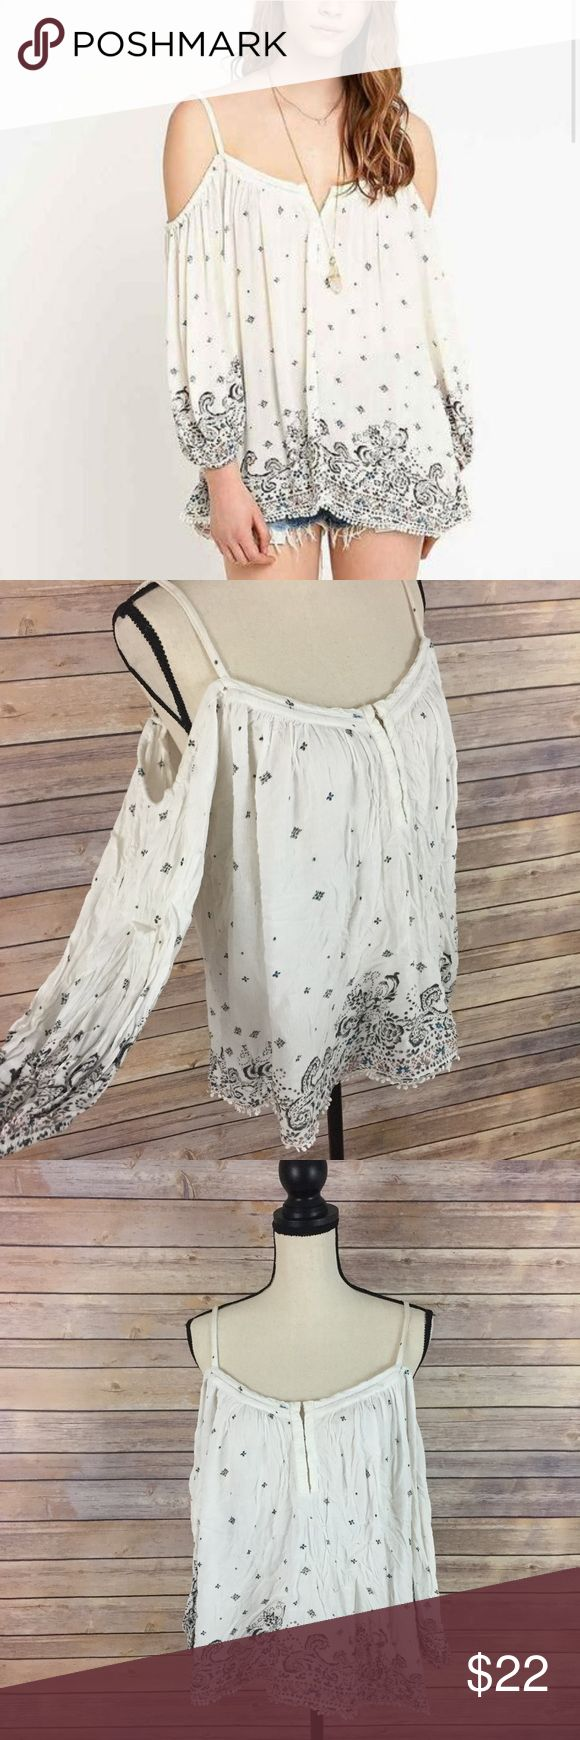 "Urban Outfitters Ecoté Boho Gypsie Cold Shoulder M Ecote for Urban Outfitters Cold Shoulder Hippy Boho Loose Festival blouses   -Size M  -Cold shoulder  -Has some wear, but no major flaws   Measurements taken on one side while item was laid flat  Chest: 26""  Length:26""     C35 Urban Outfitters Tops Blouses"